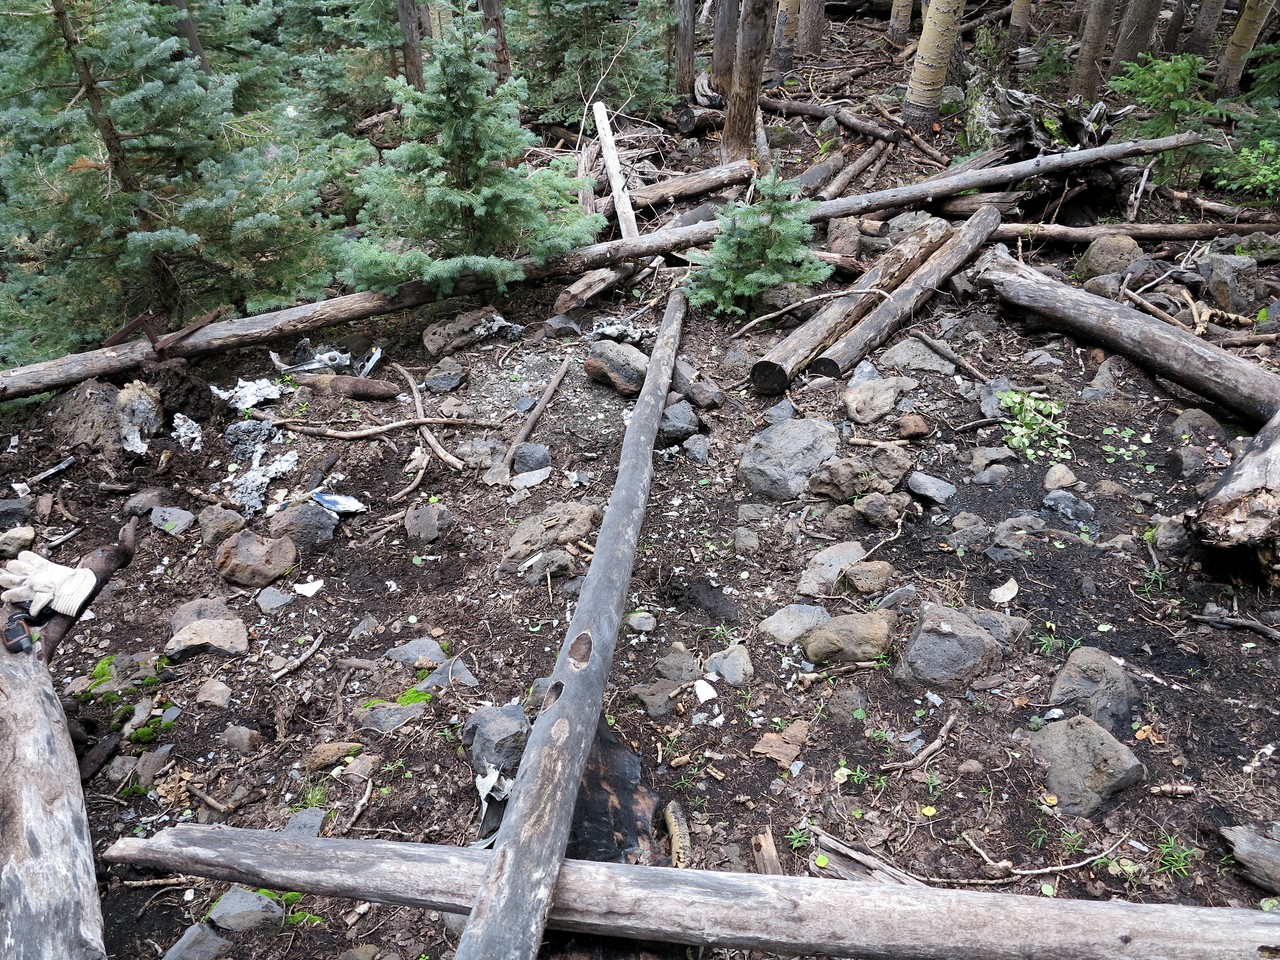 The entire crash site lies within a 20 foot radius. The short condensed debris path is consistent with a vertical descent to the ground.